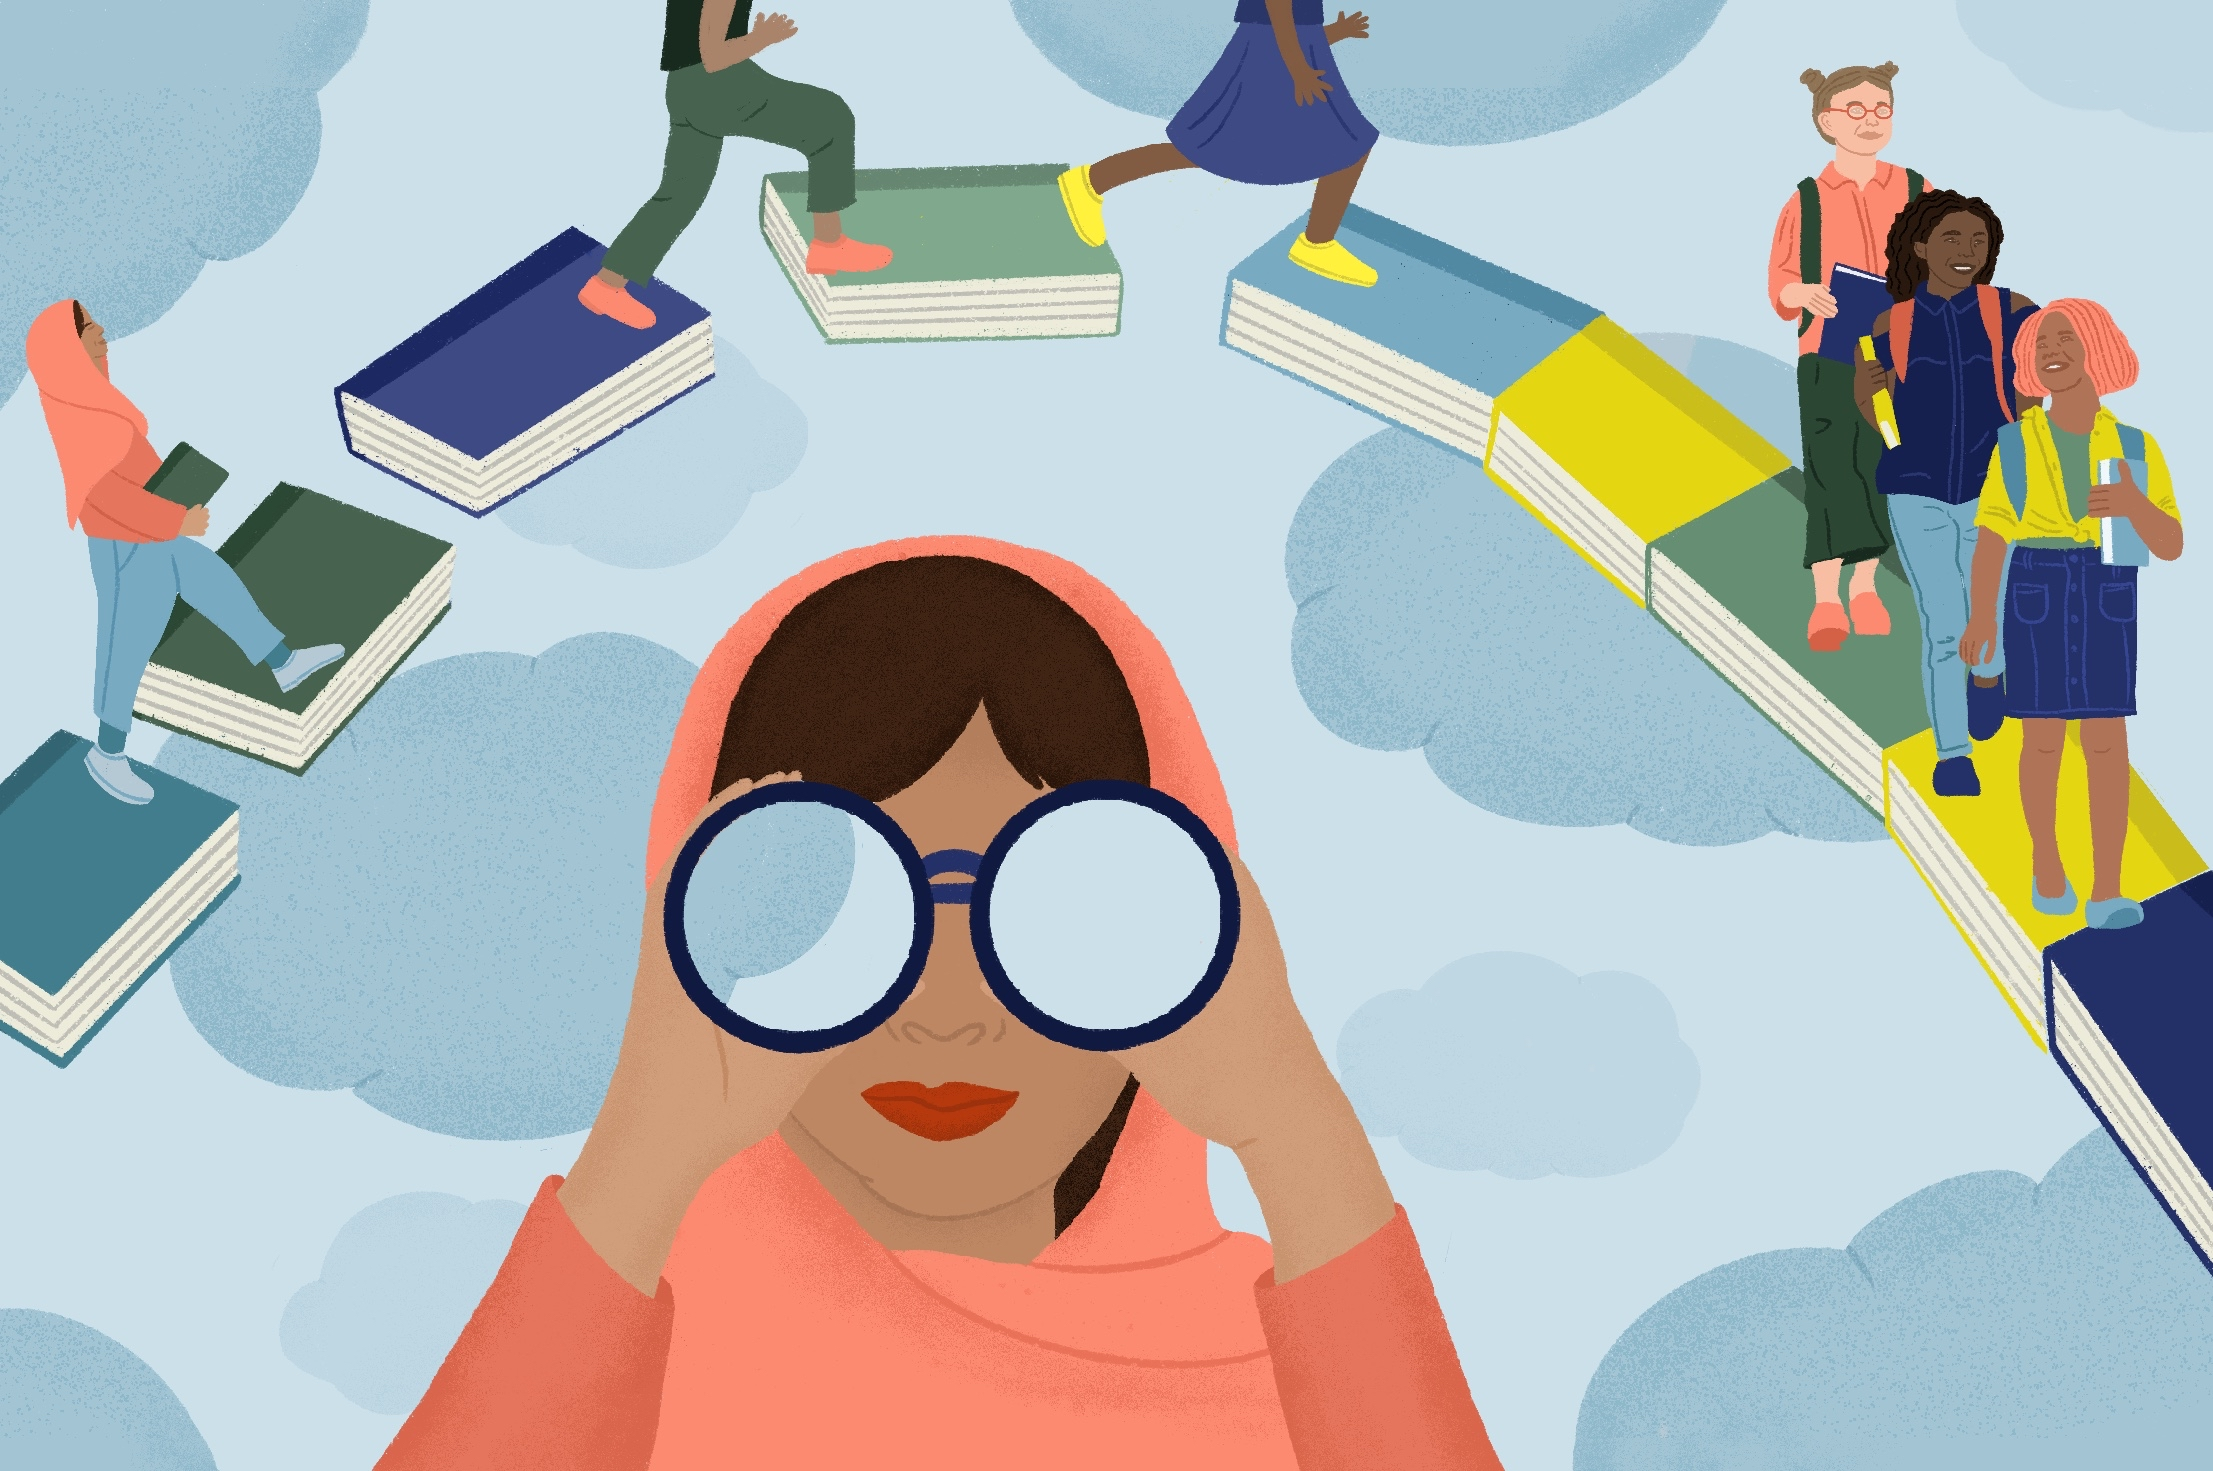 An illustration of a woman wearing a headscarf, looking toward you with binoculars while young women walk over a bridge of books floating in the sky in the background.